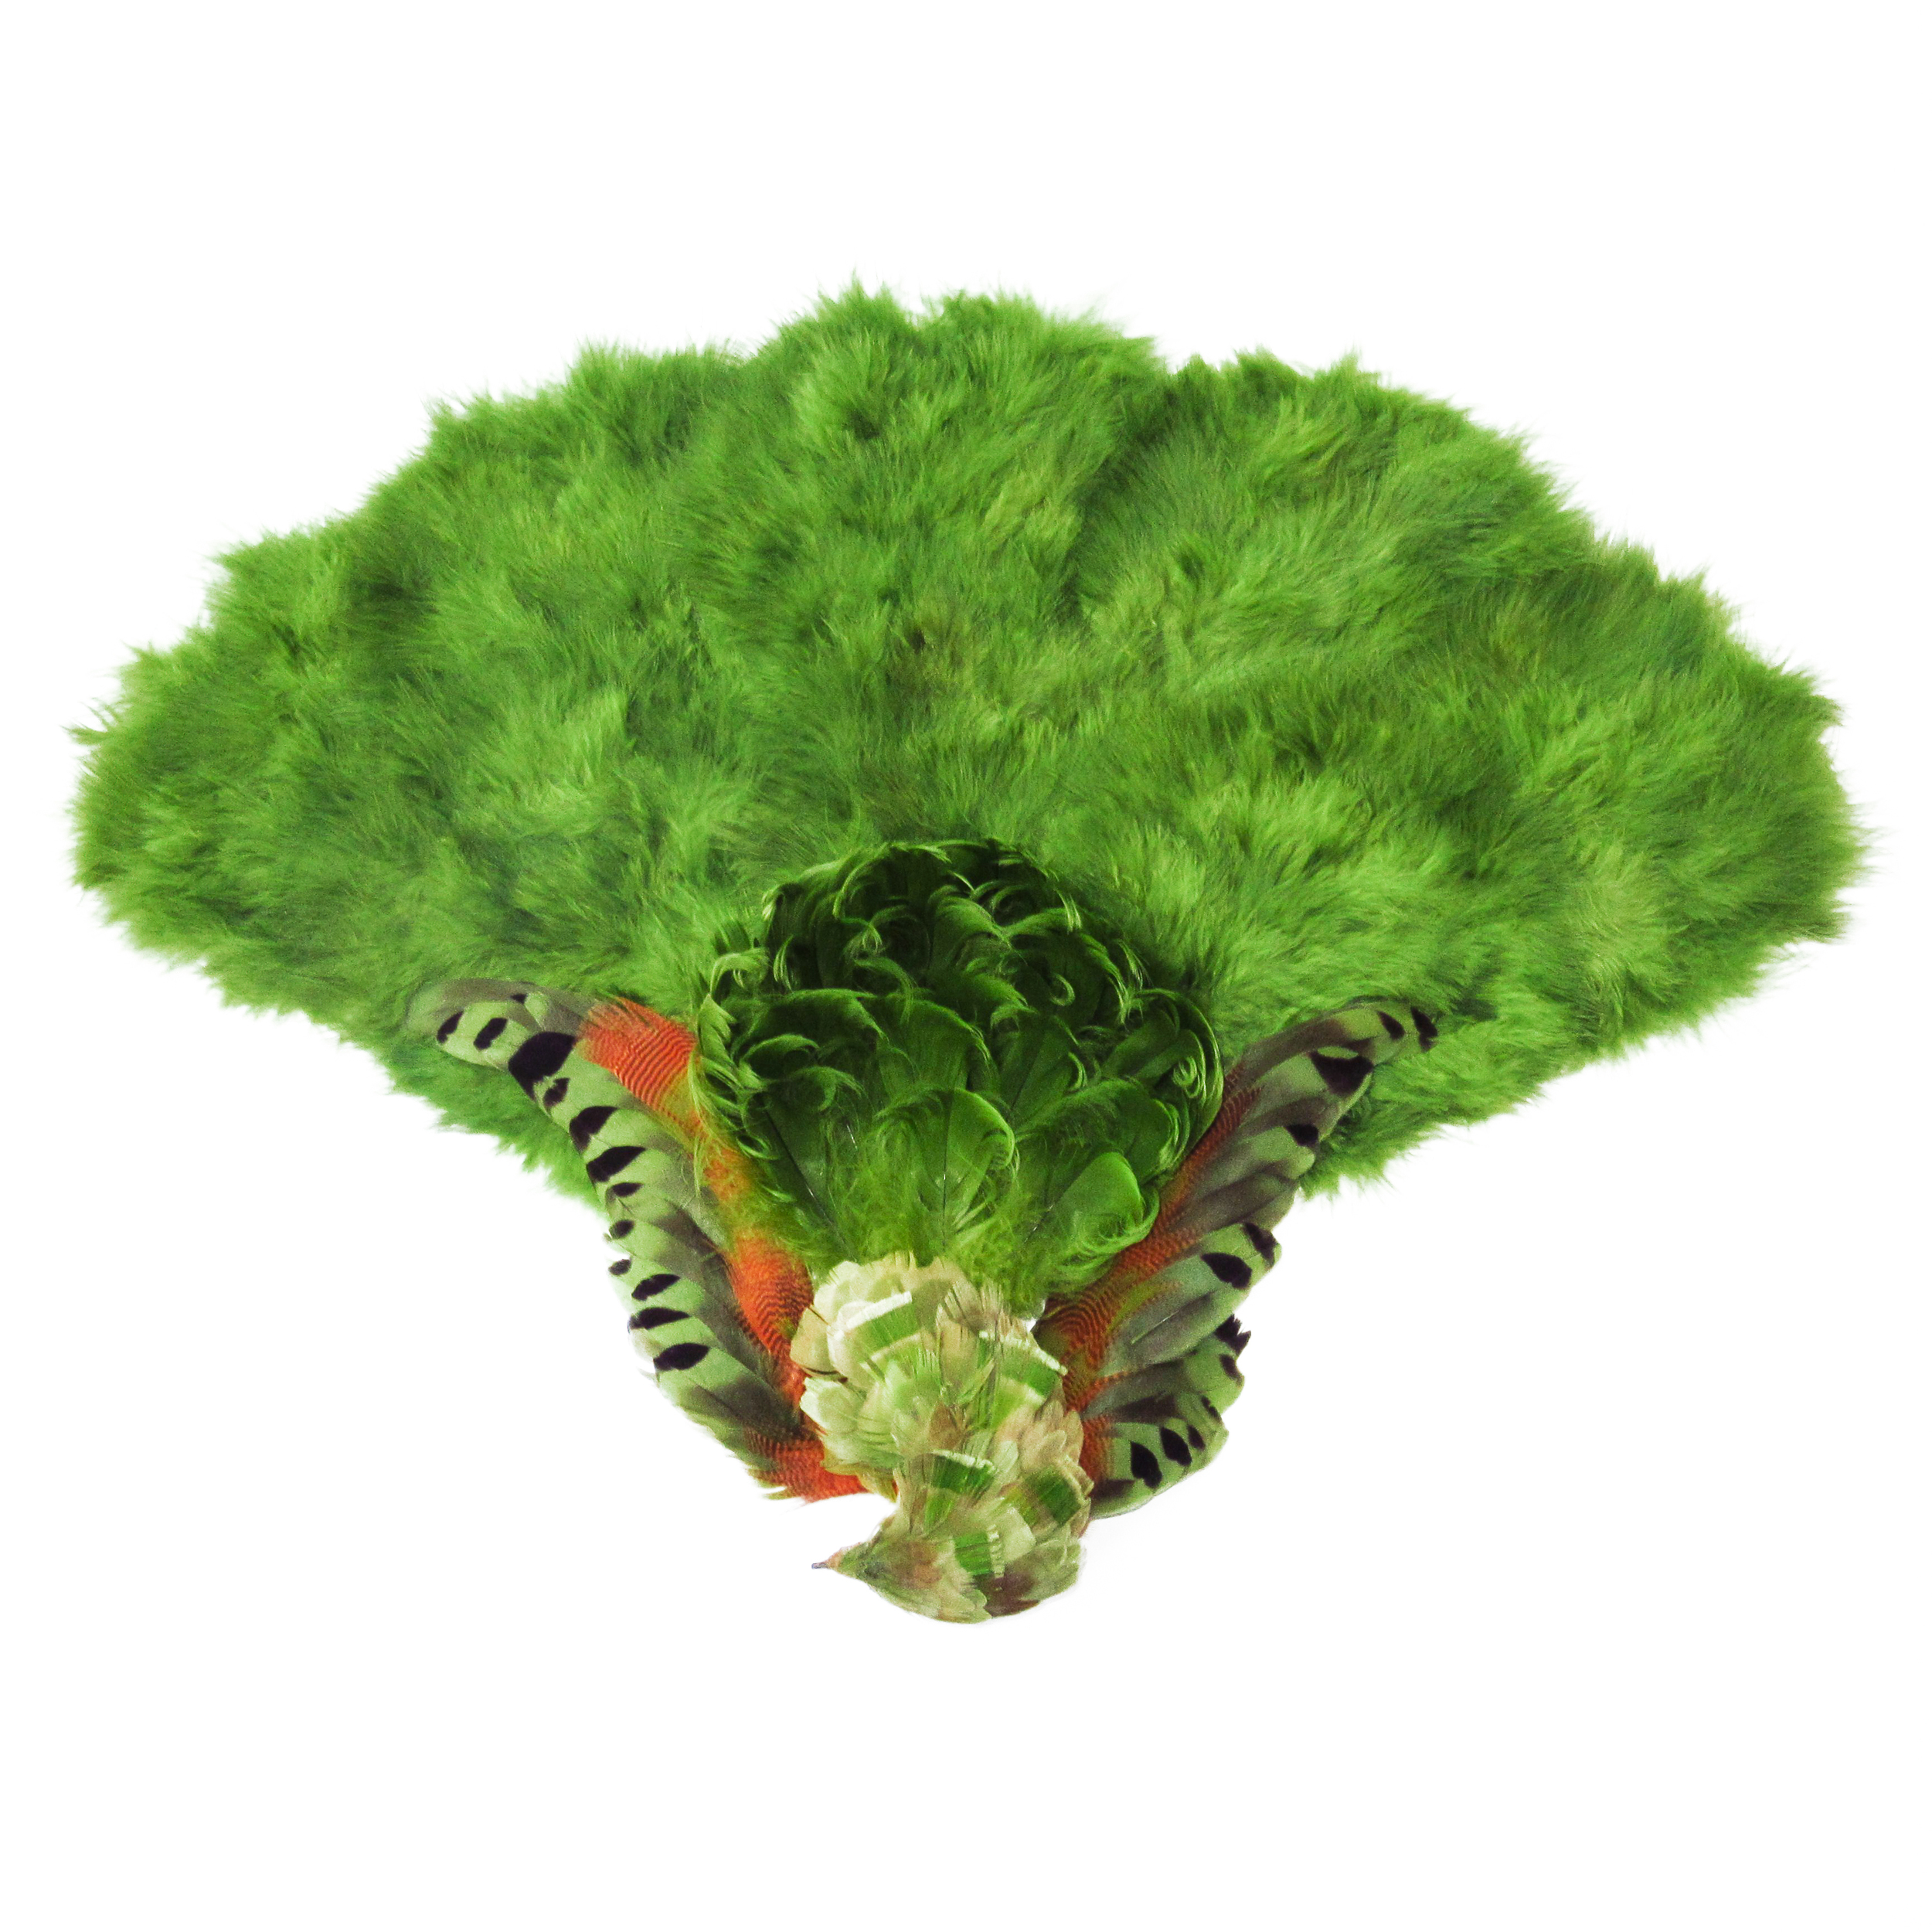 Green moss feathers